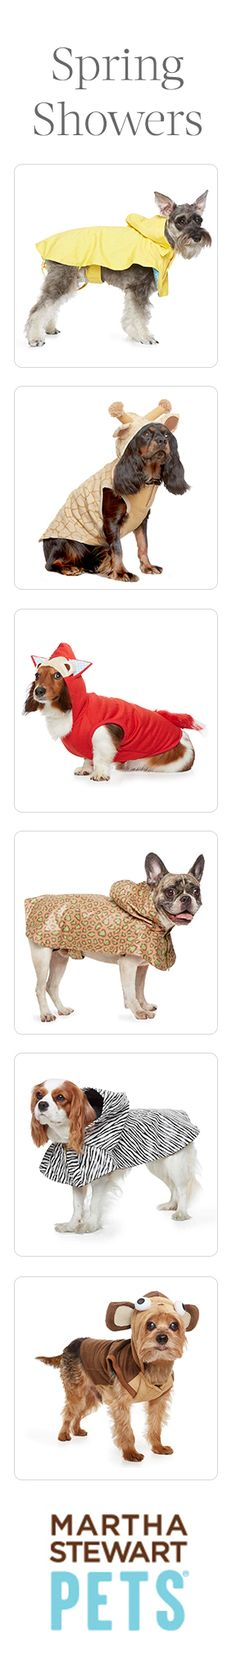 Avoid April Showers with spring apparel that protects your pet.